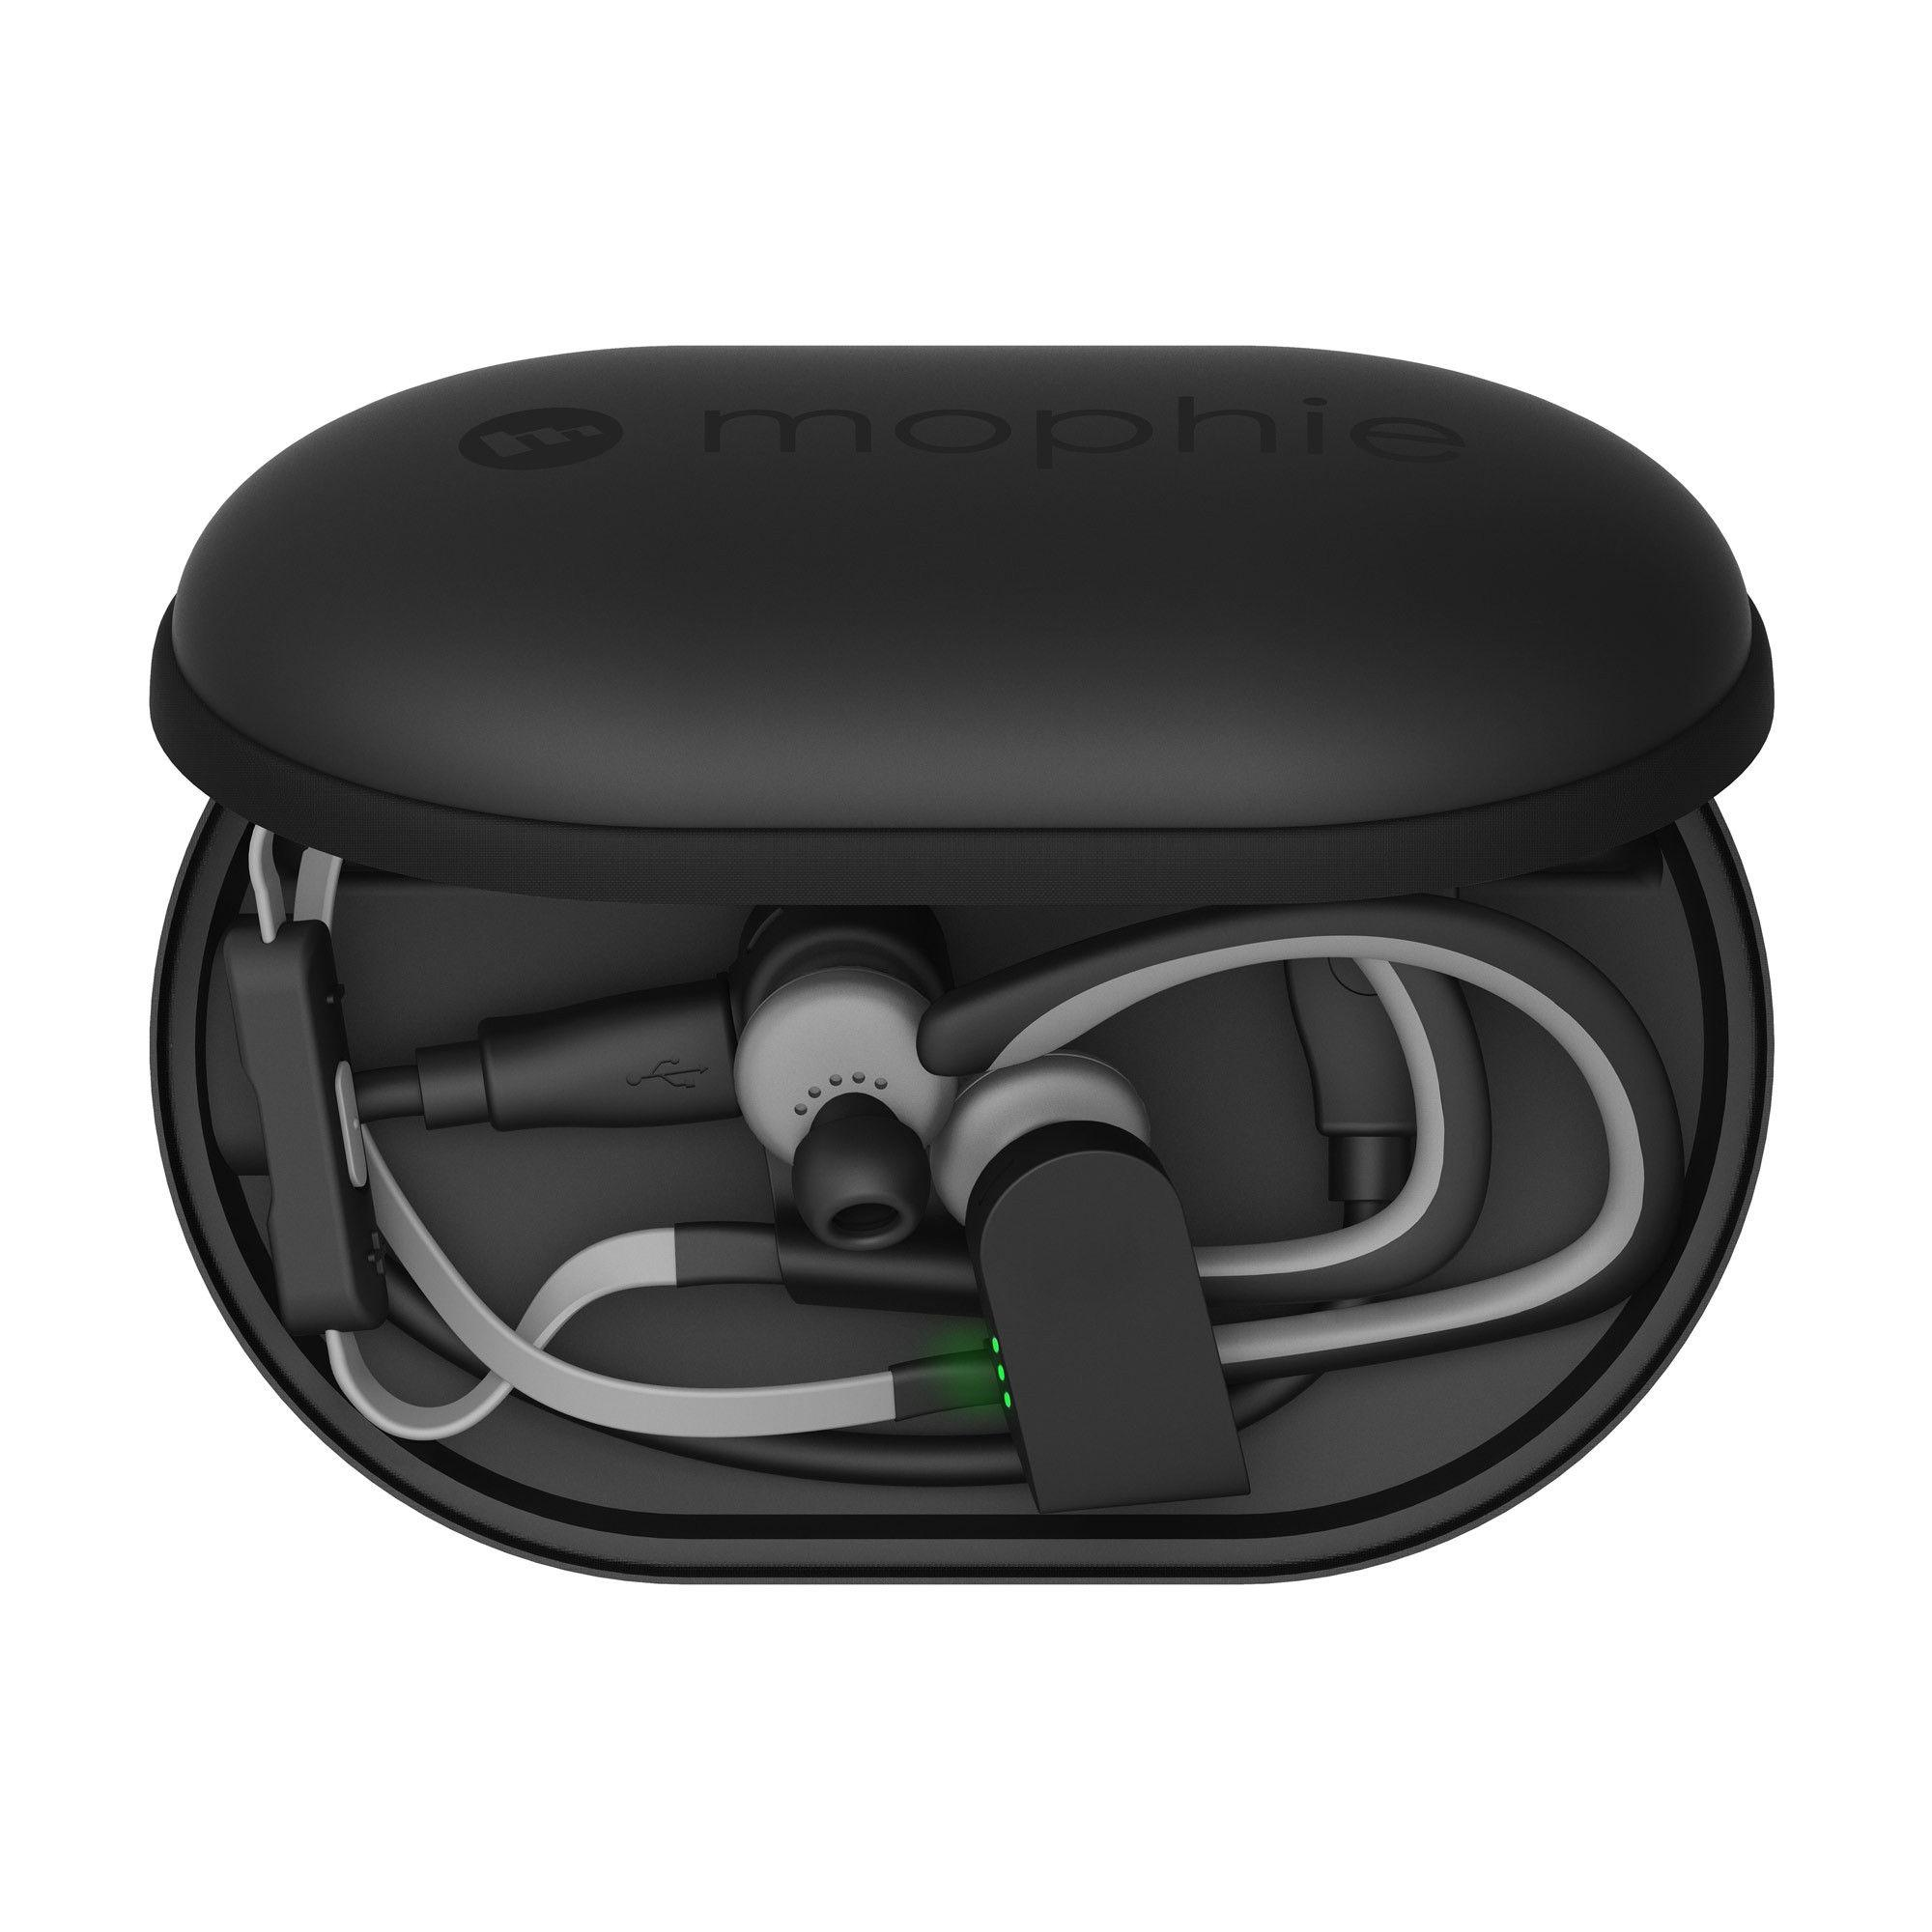 6d60993f982 Mophie Power Capsule is a wireless earbuds charger and safe-case ...